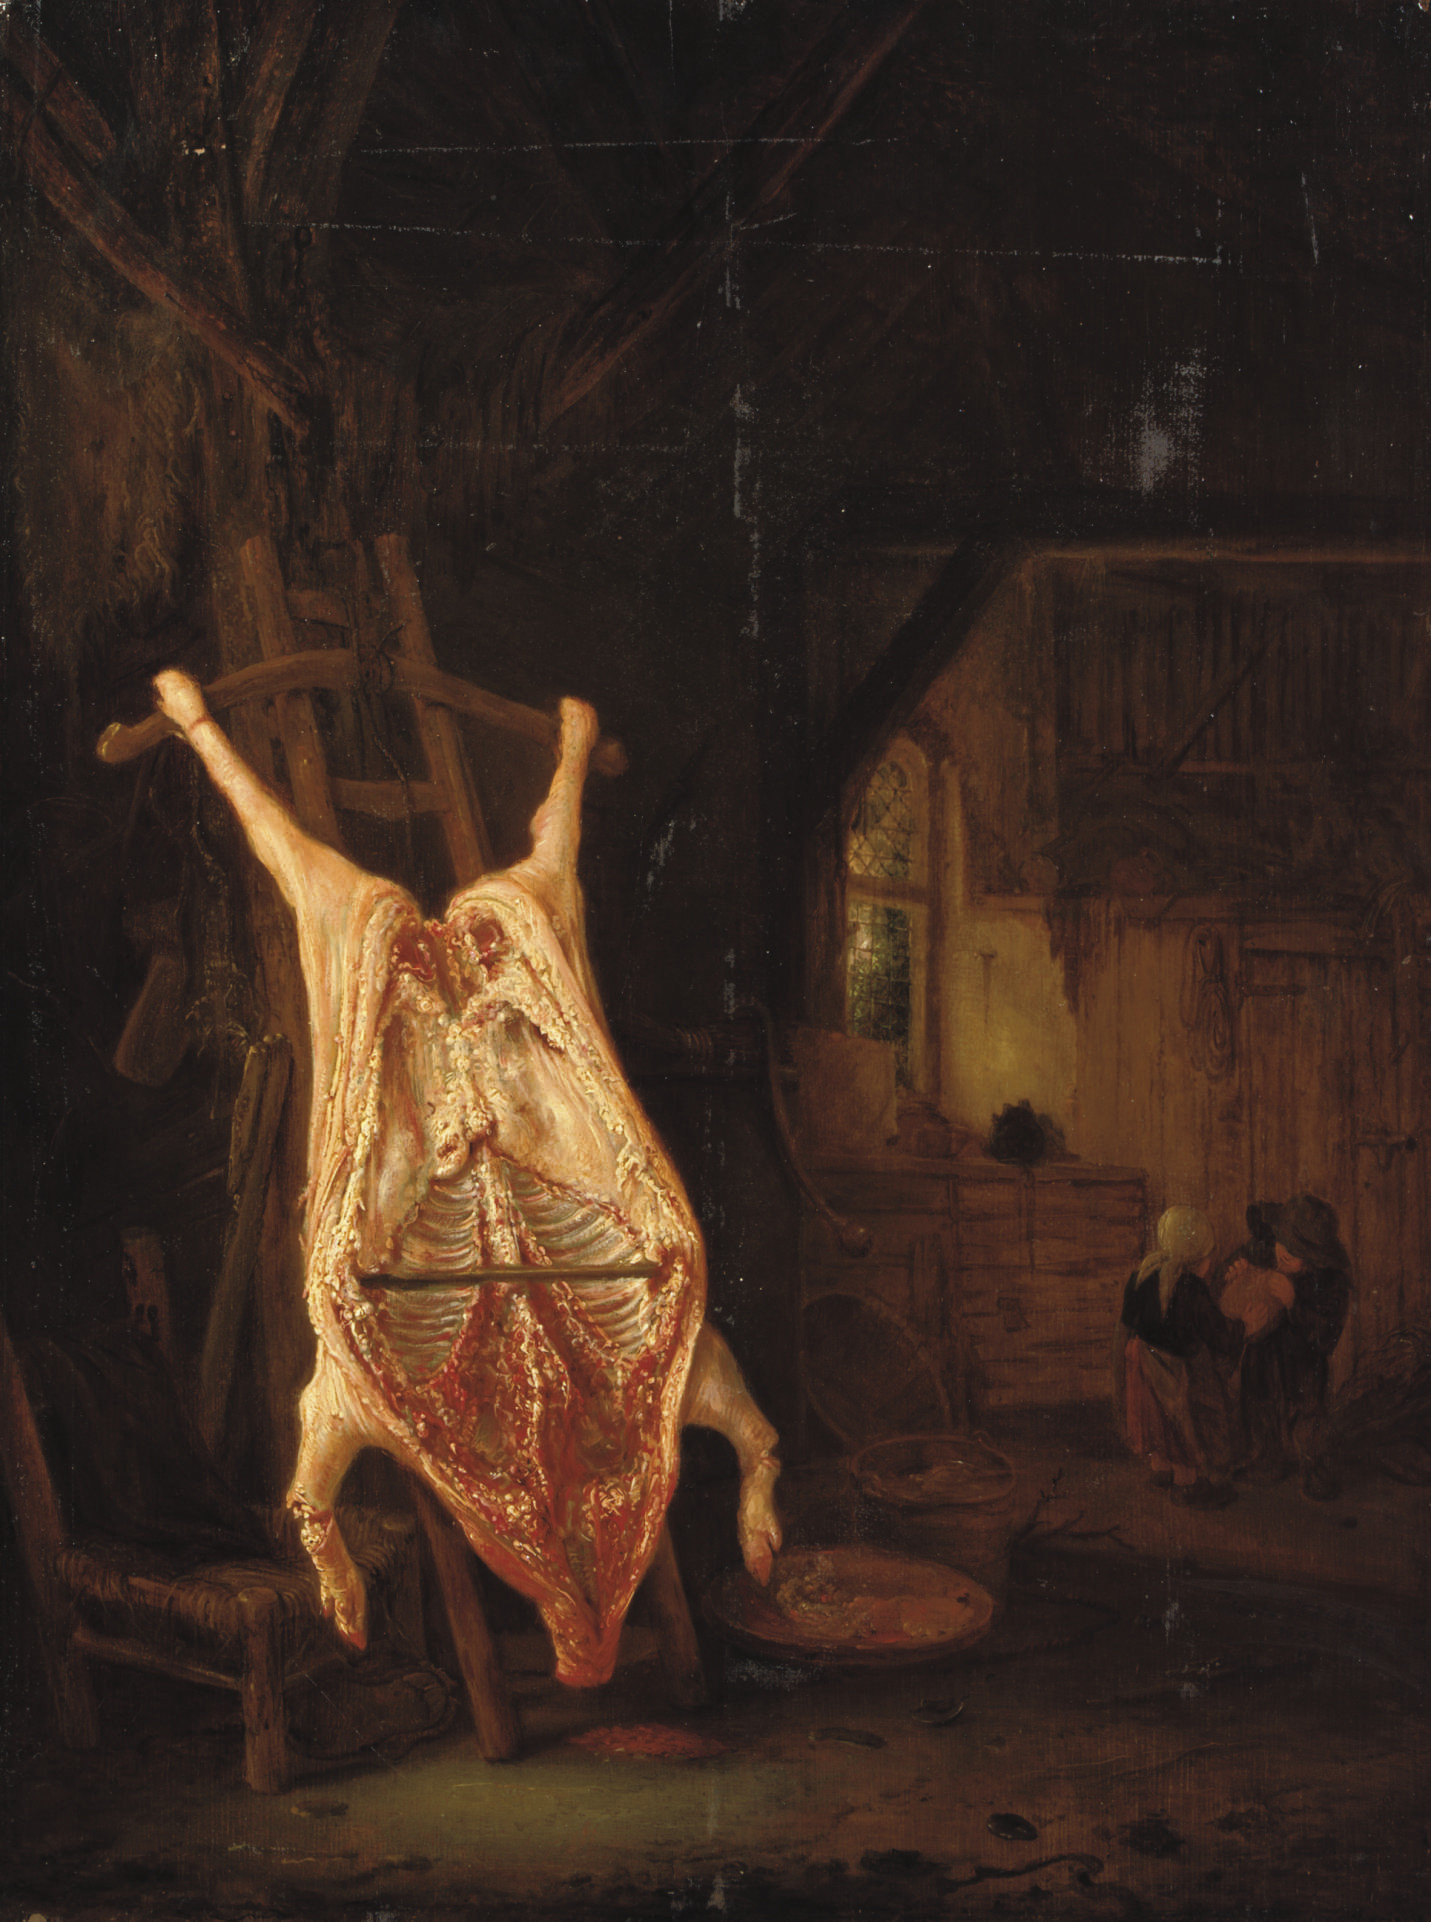 A barn interior with a slaughtered pig, children playing beyond